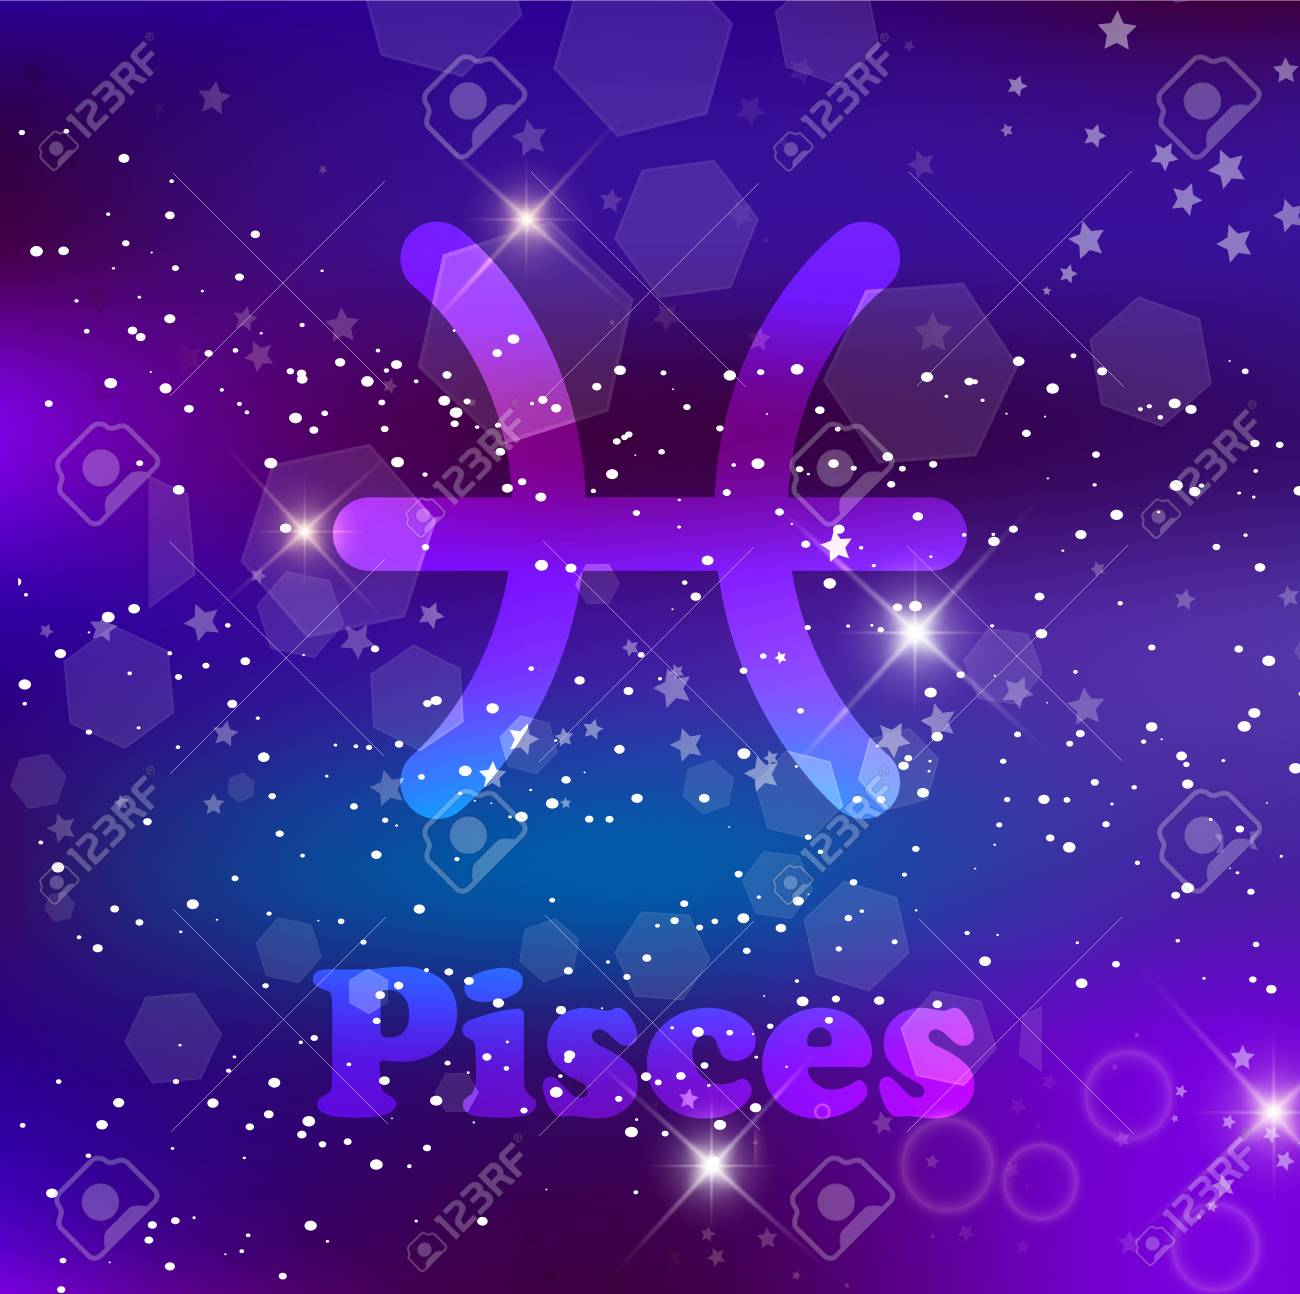 Pisces Zodiac Sign And Constellation On A Cosmic Purple Background Royalty Free Cliparts Vectors And Stock Illustration Image 114558365